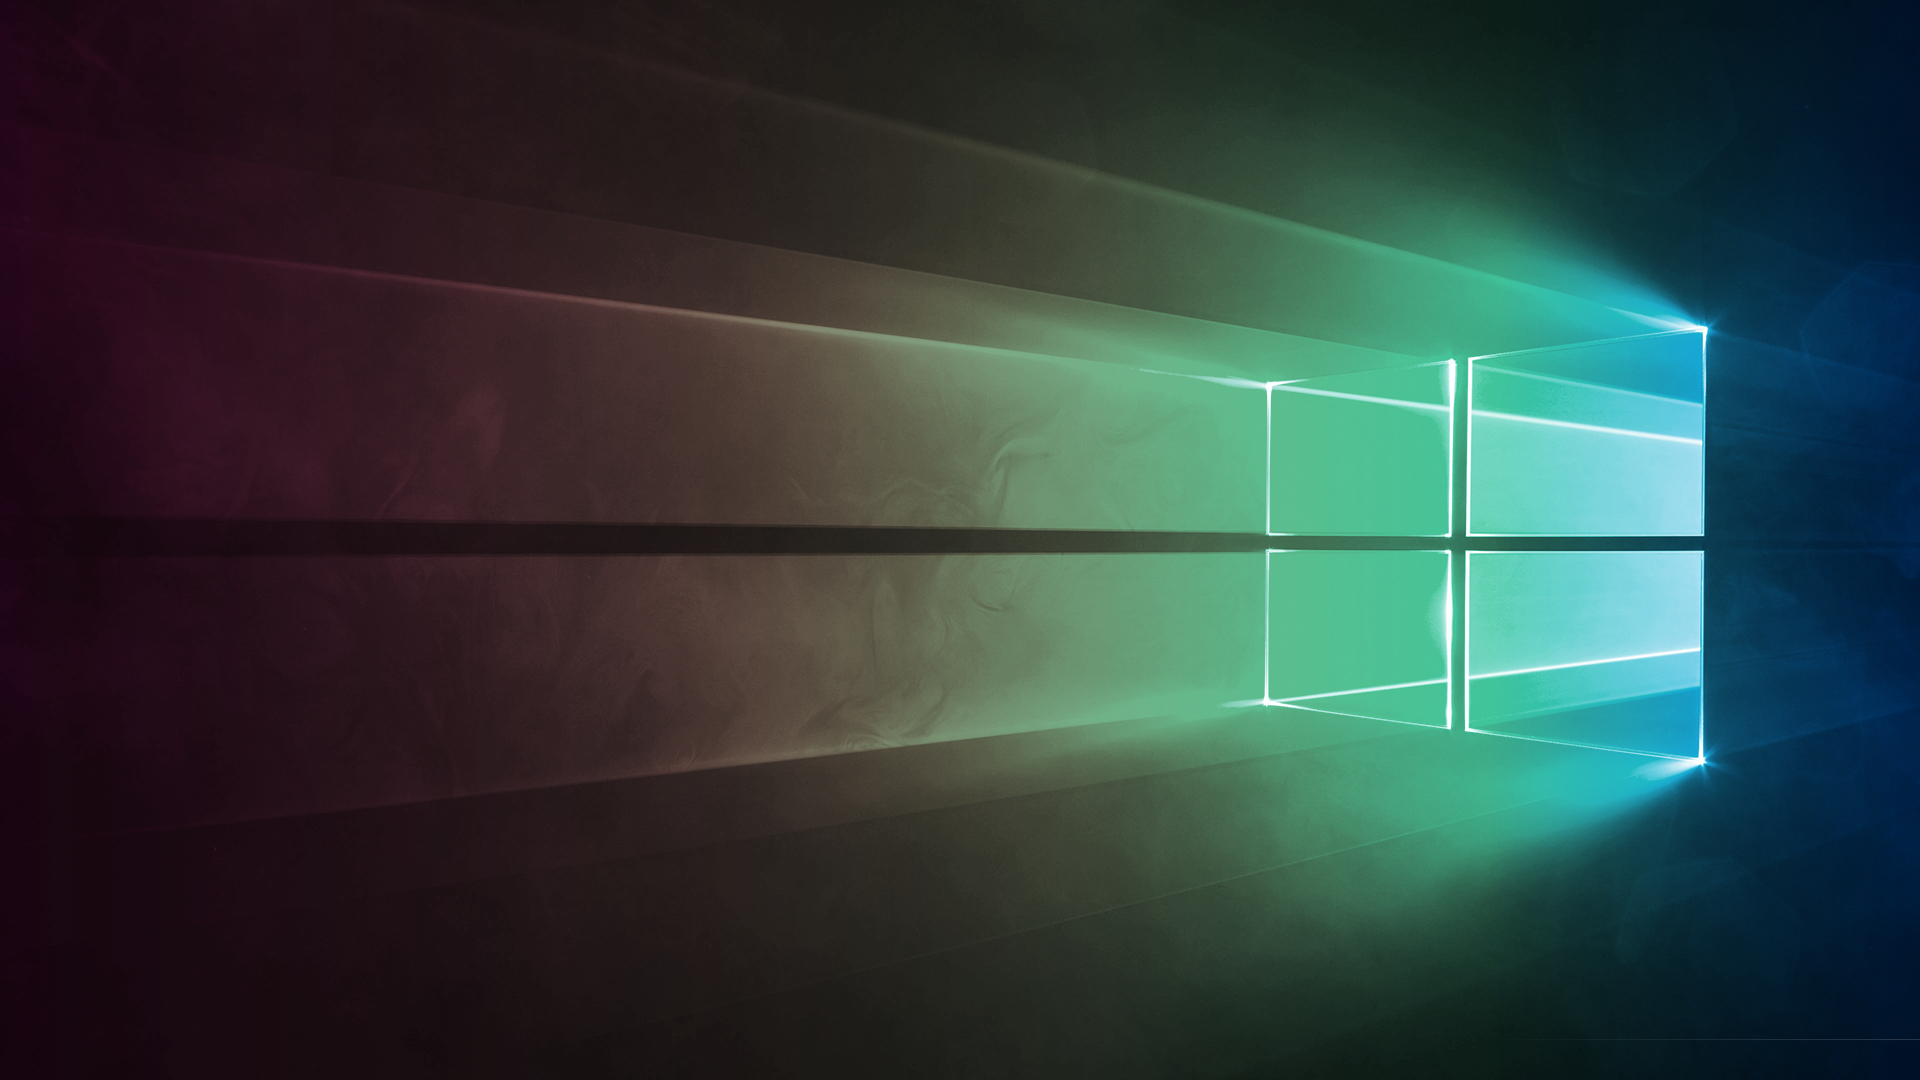 [Resim: windows_10_wallpaper__hd__windows_rainbo...9g3wbz.png]